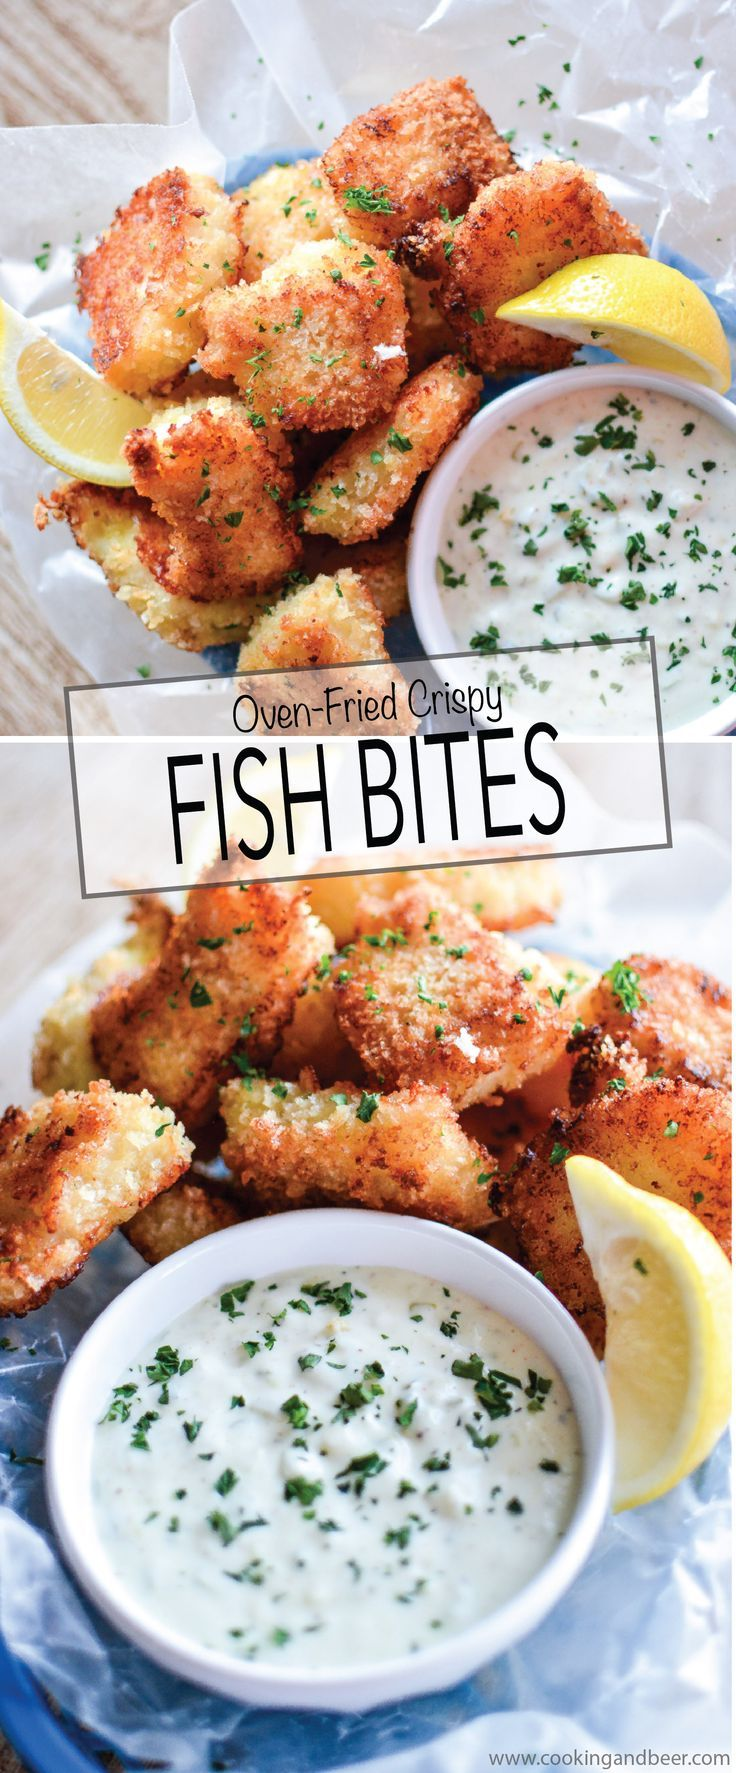 Recipe for Crispy Oven-Fried Fish Bites with Homemade Tartar Sauce is a quick weeknight meal that is kid friendly and so much better than the frozen stuff! | www.cookingandbeer.com